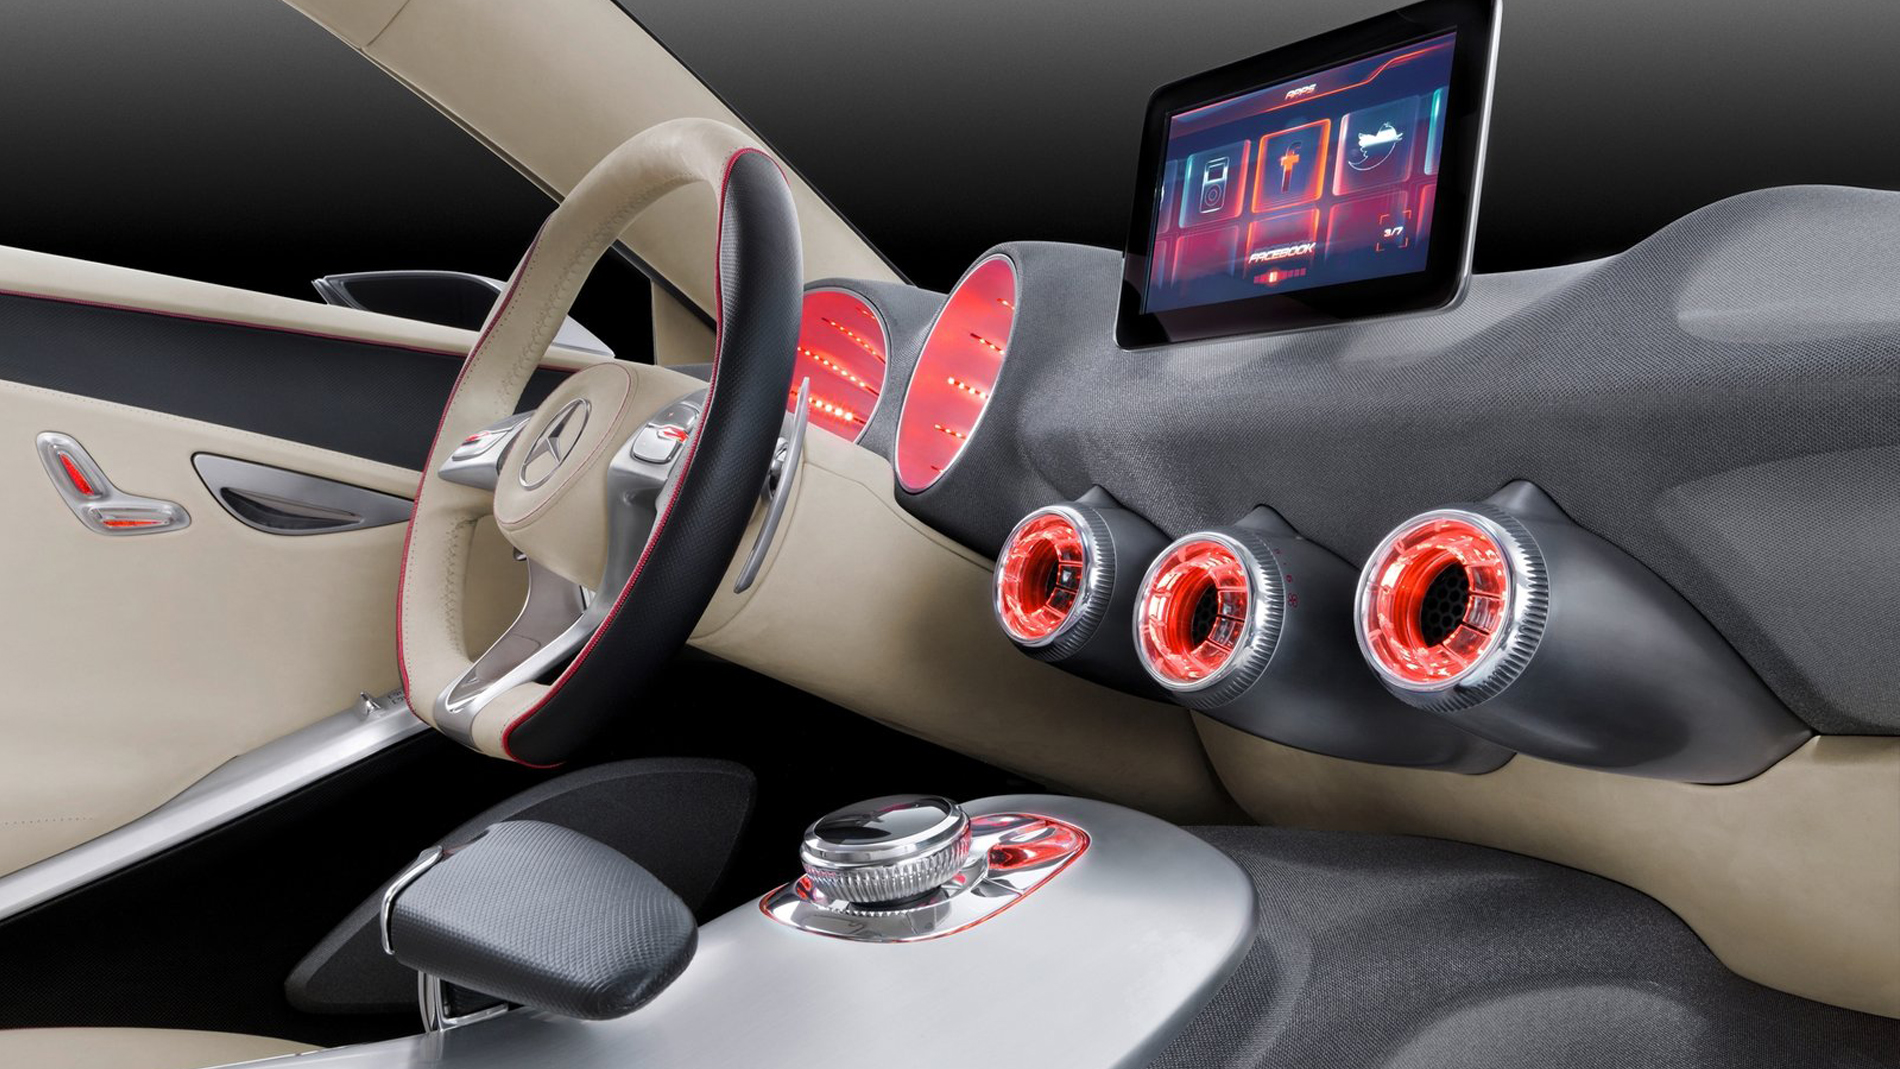 fabric interior with red circular displays and red interface